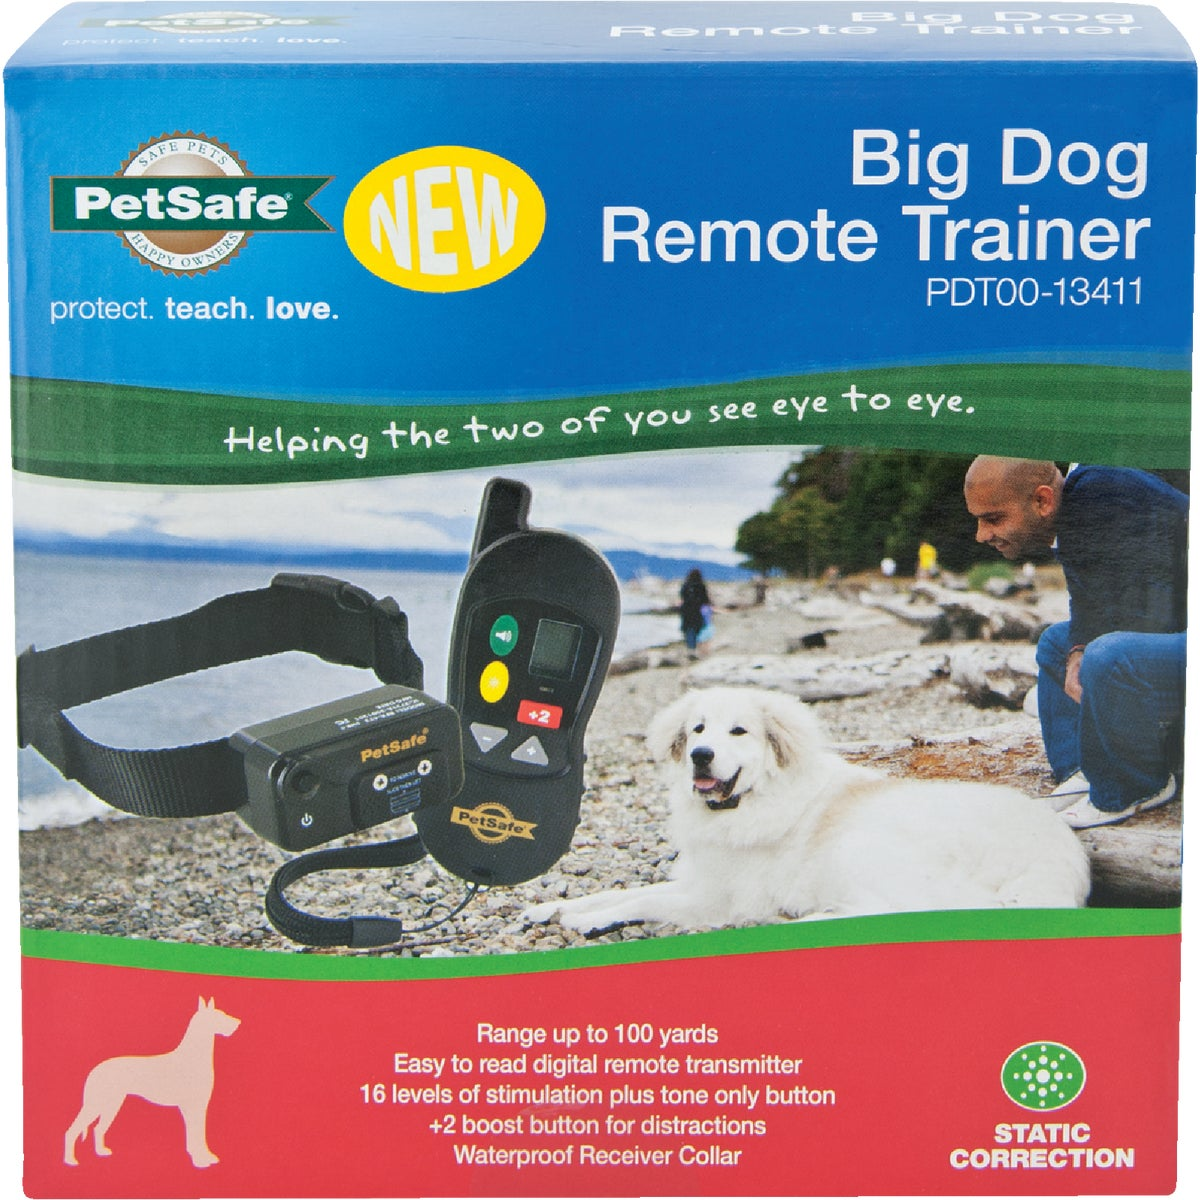 BIG DOG REMOTE TRAINER